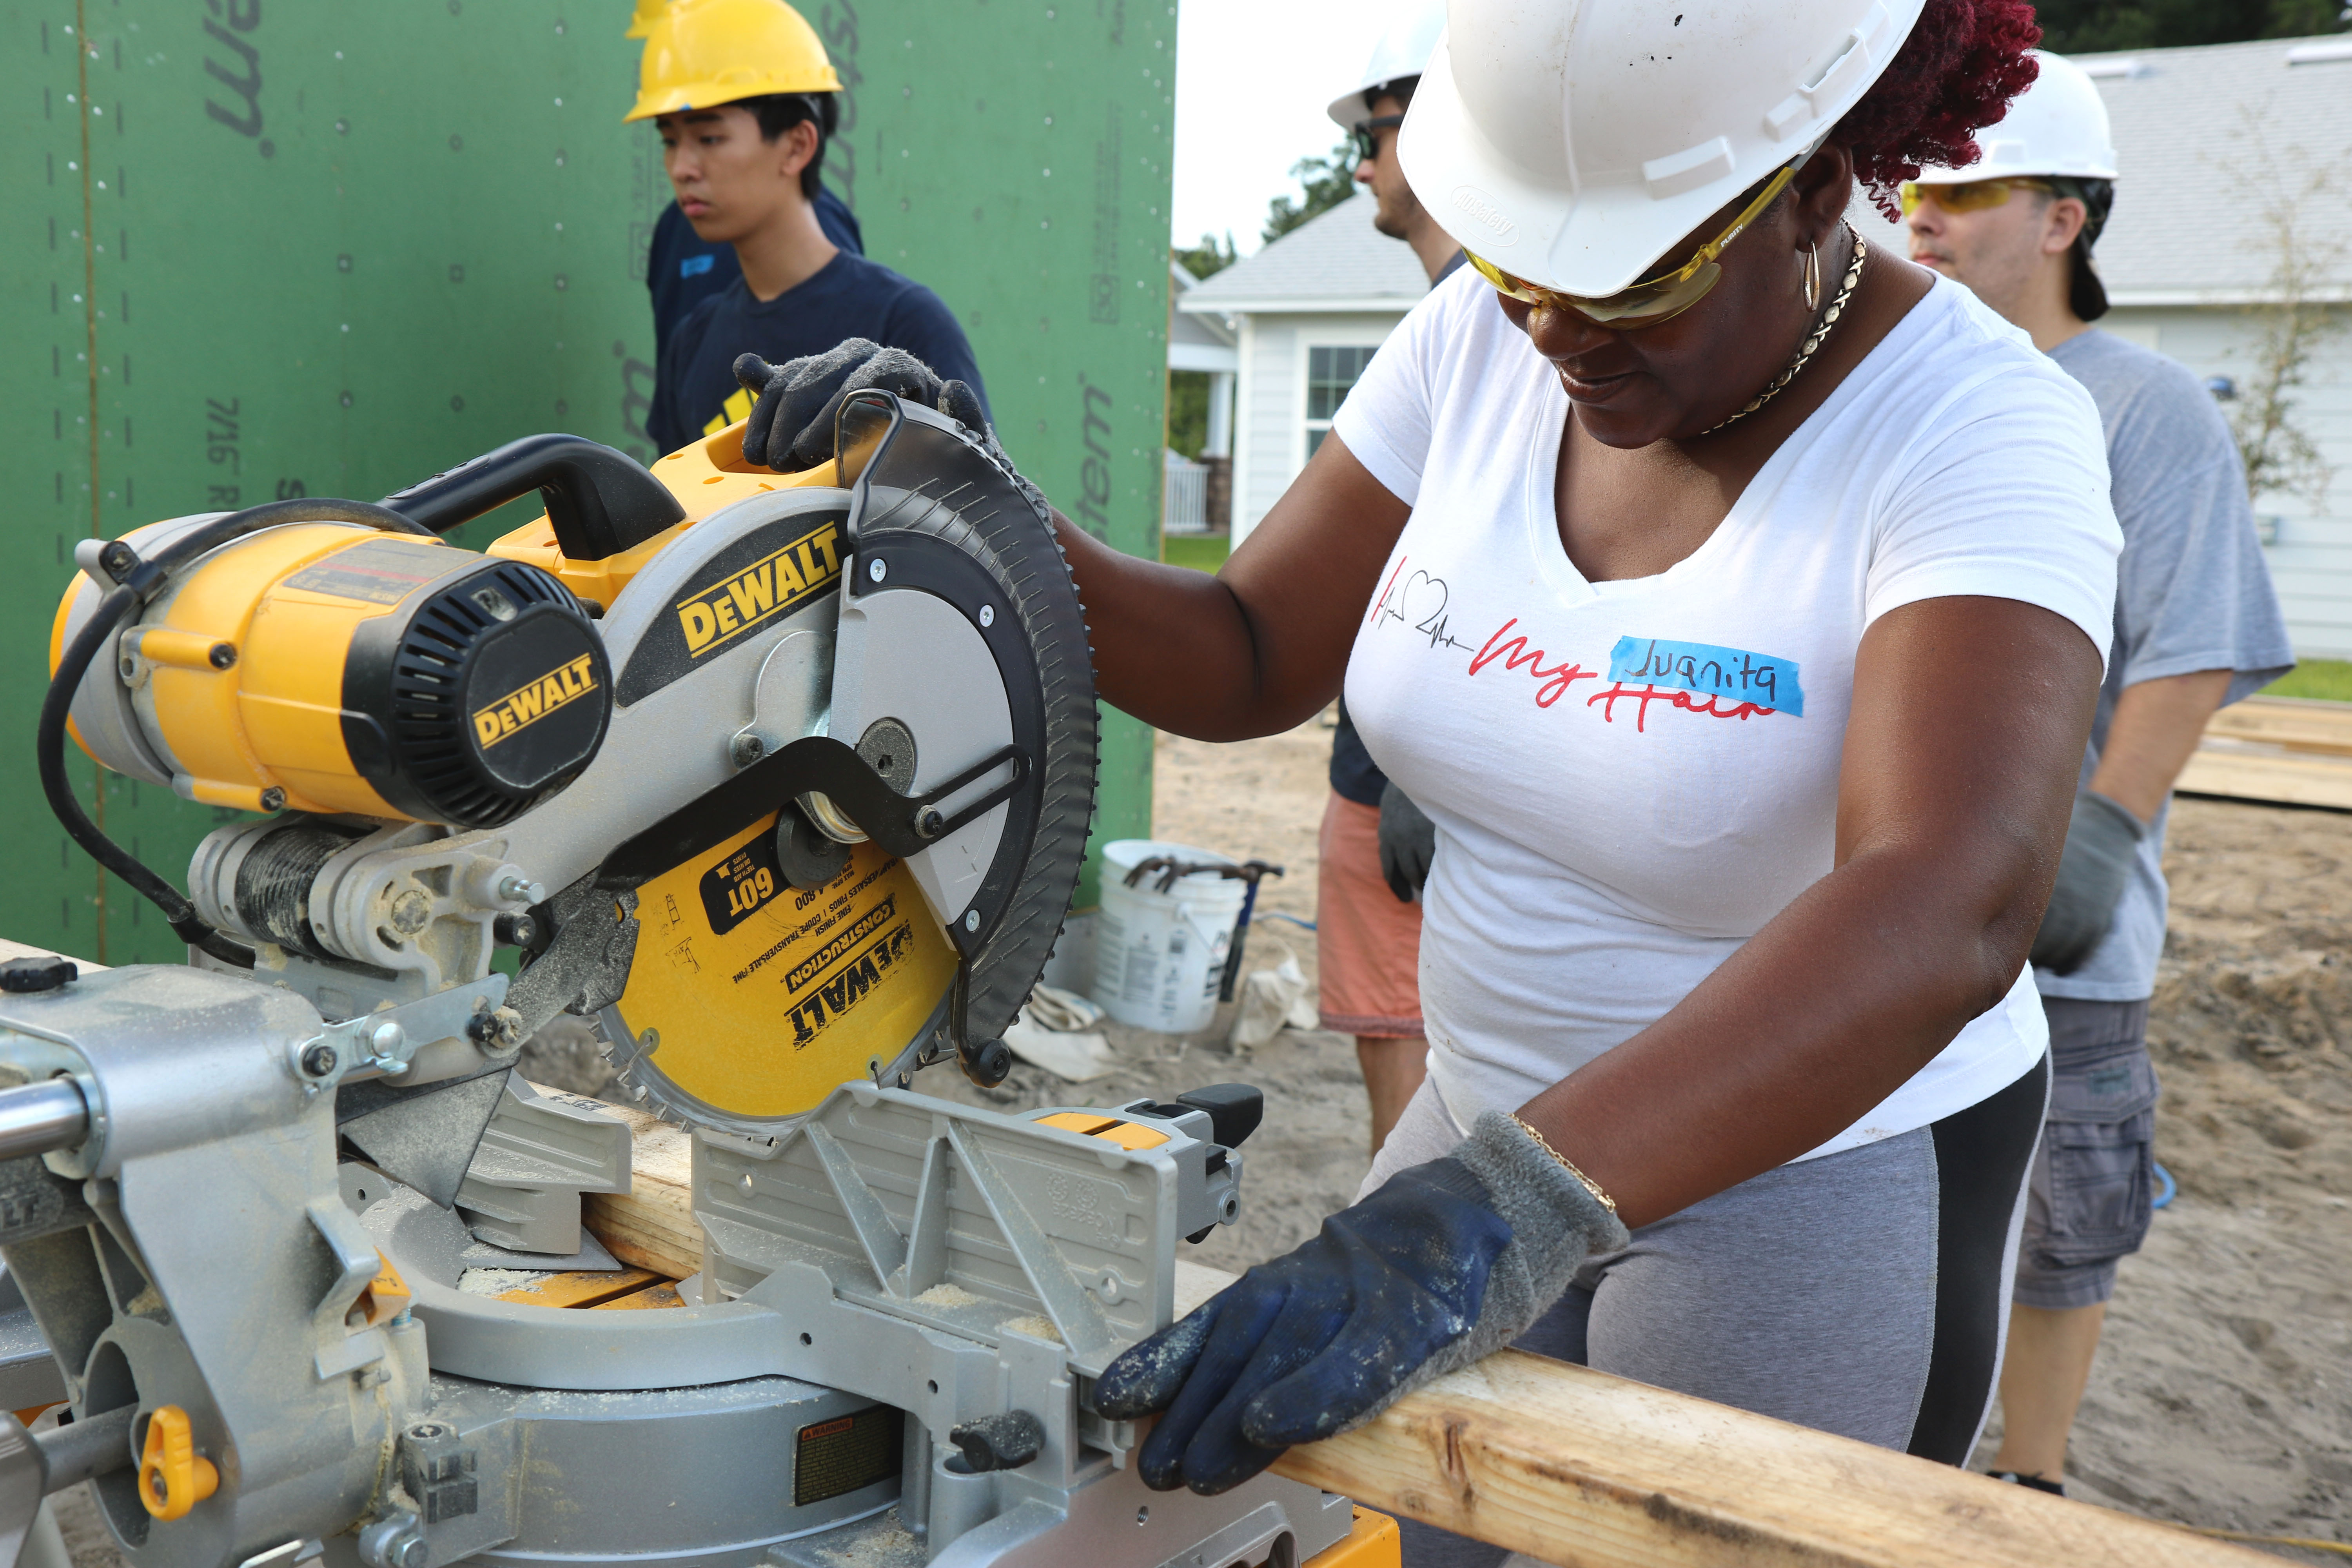 Woman wearing hard hats and glasses, using power saw on build site